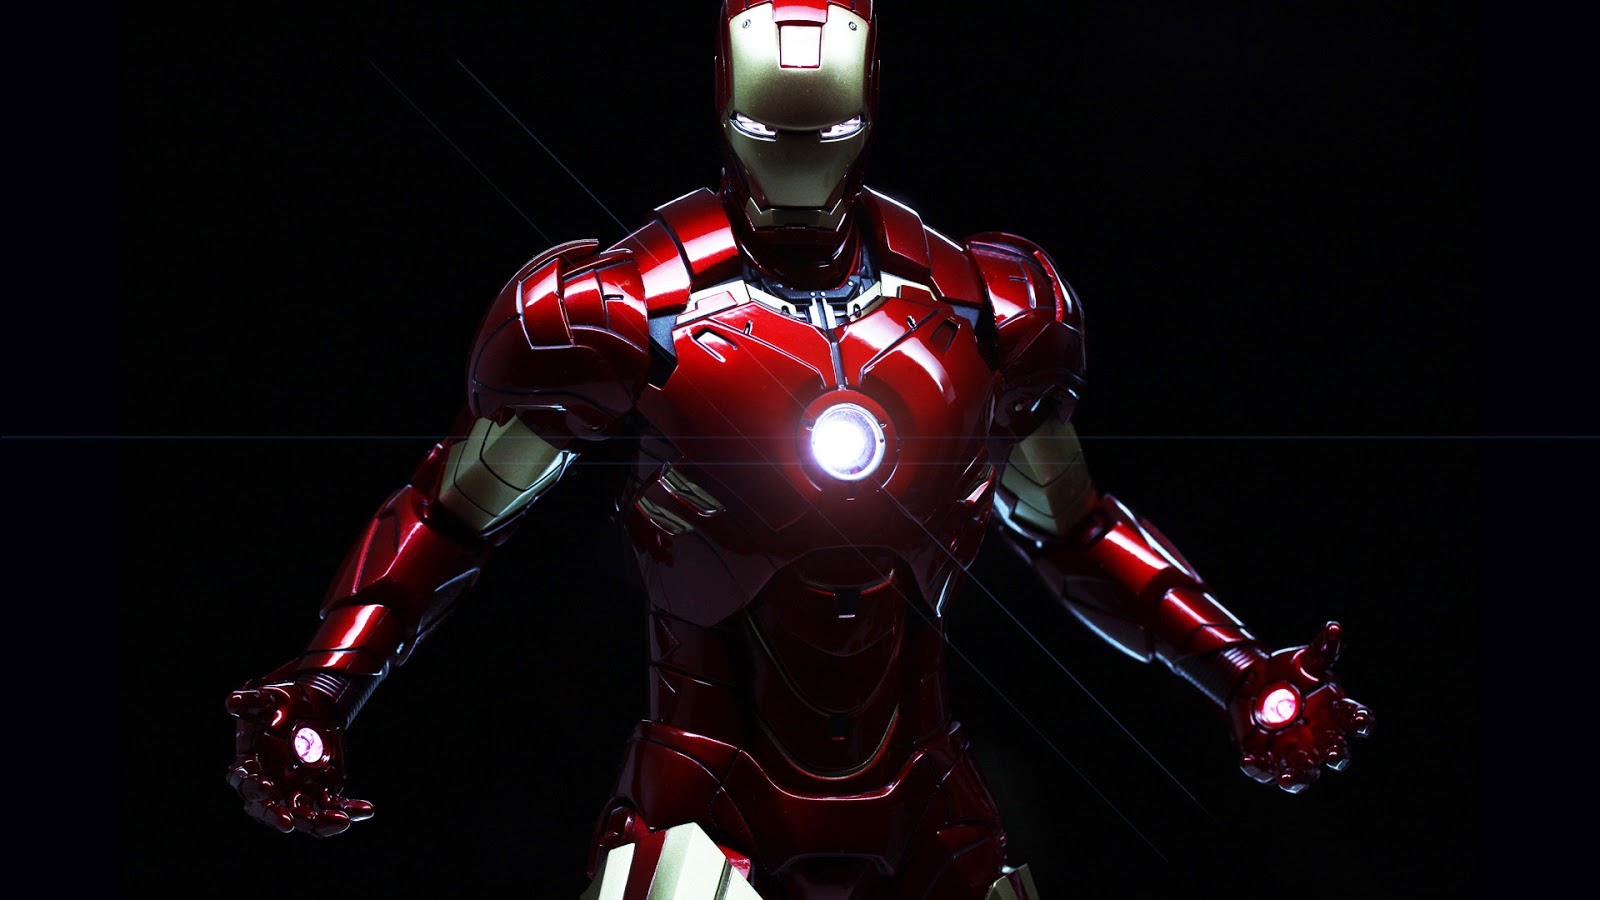 Hd Wallpapers Iron Man: Wallpapers Hd For Mac: Iron Man 3 Wallpapers HD